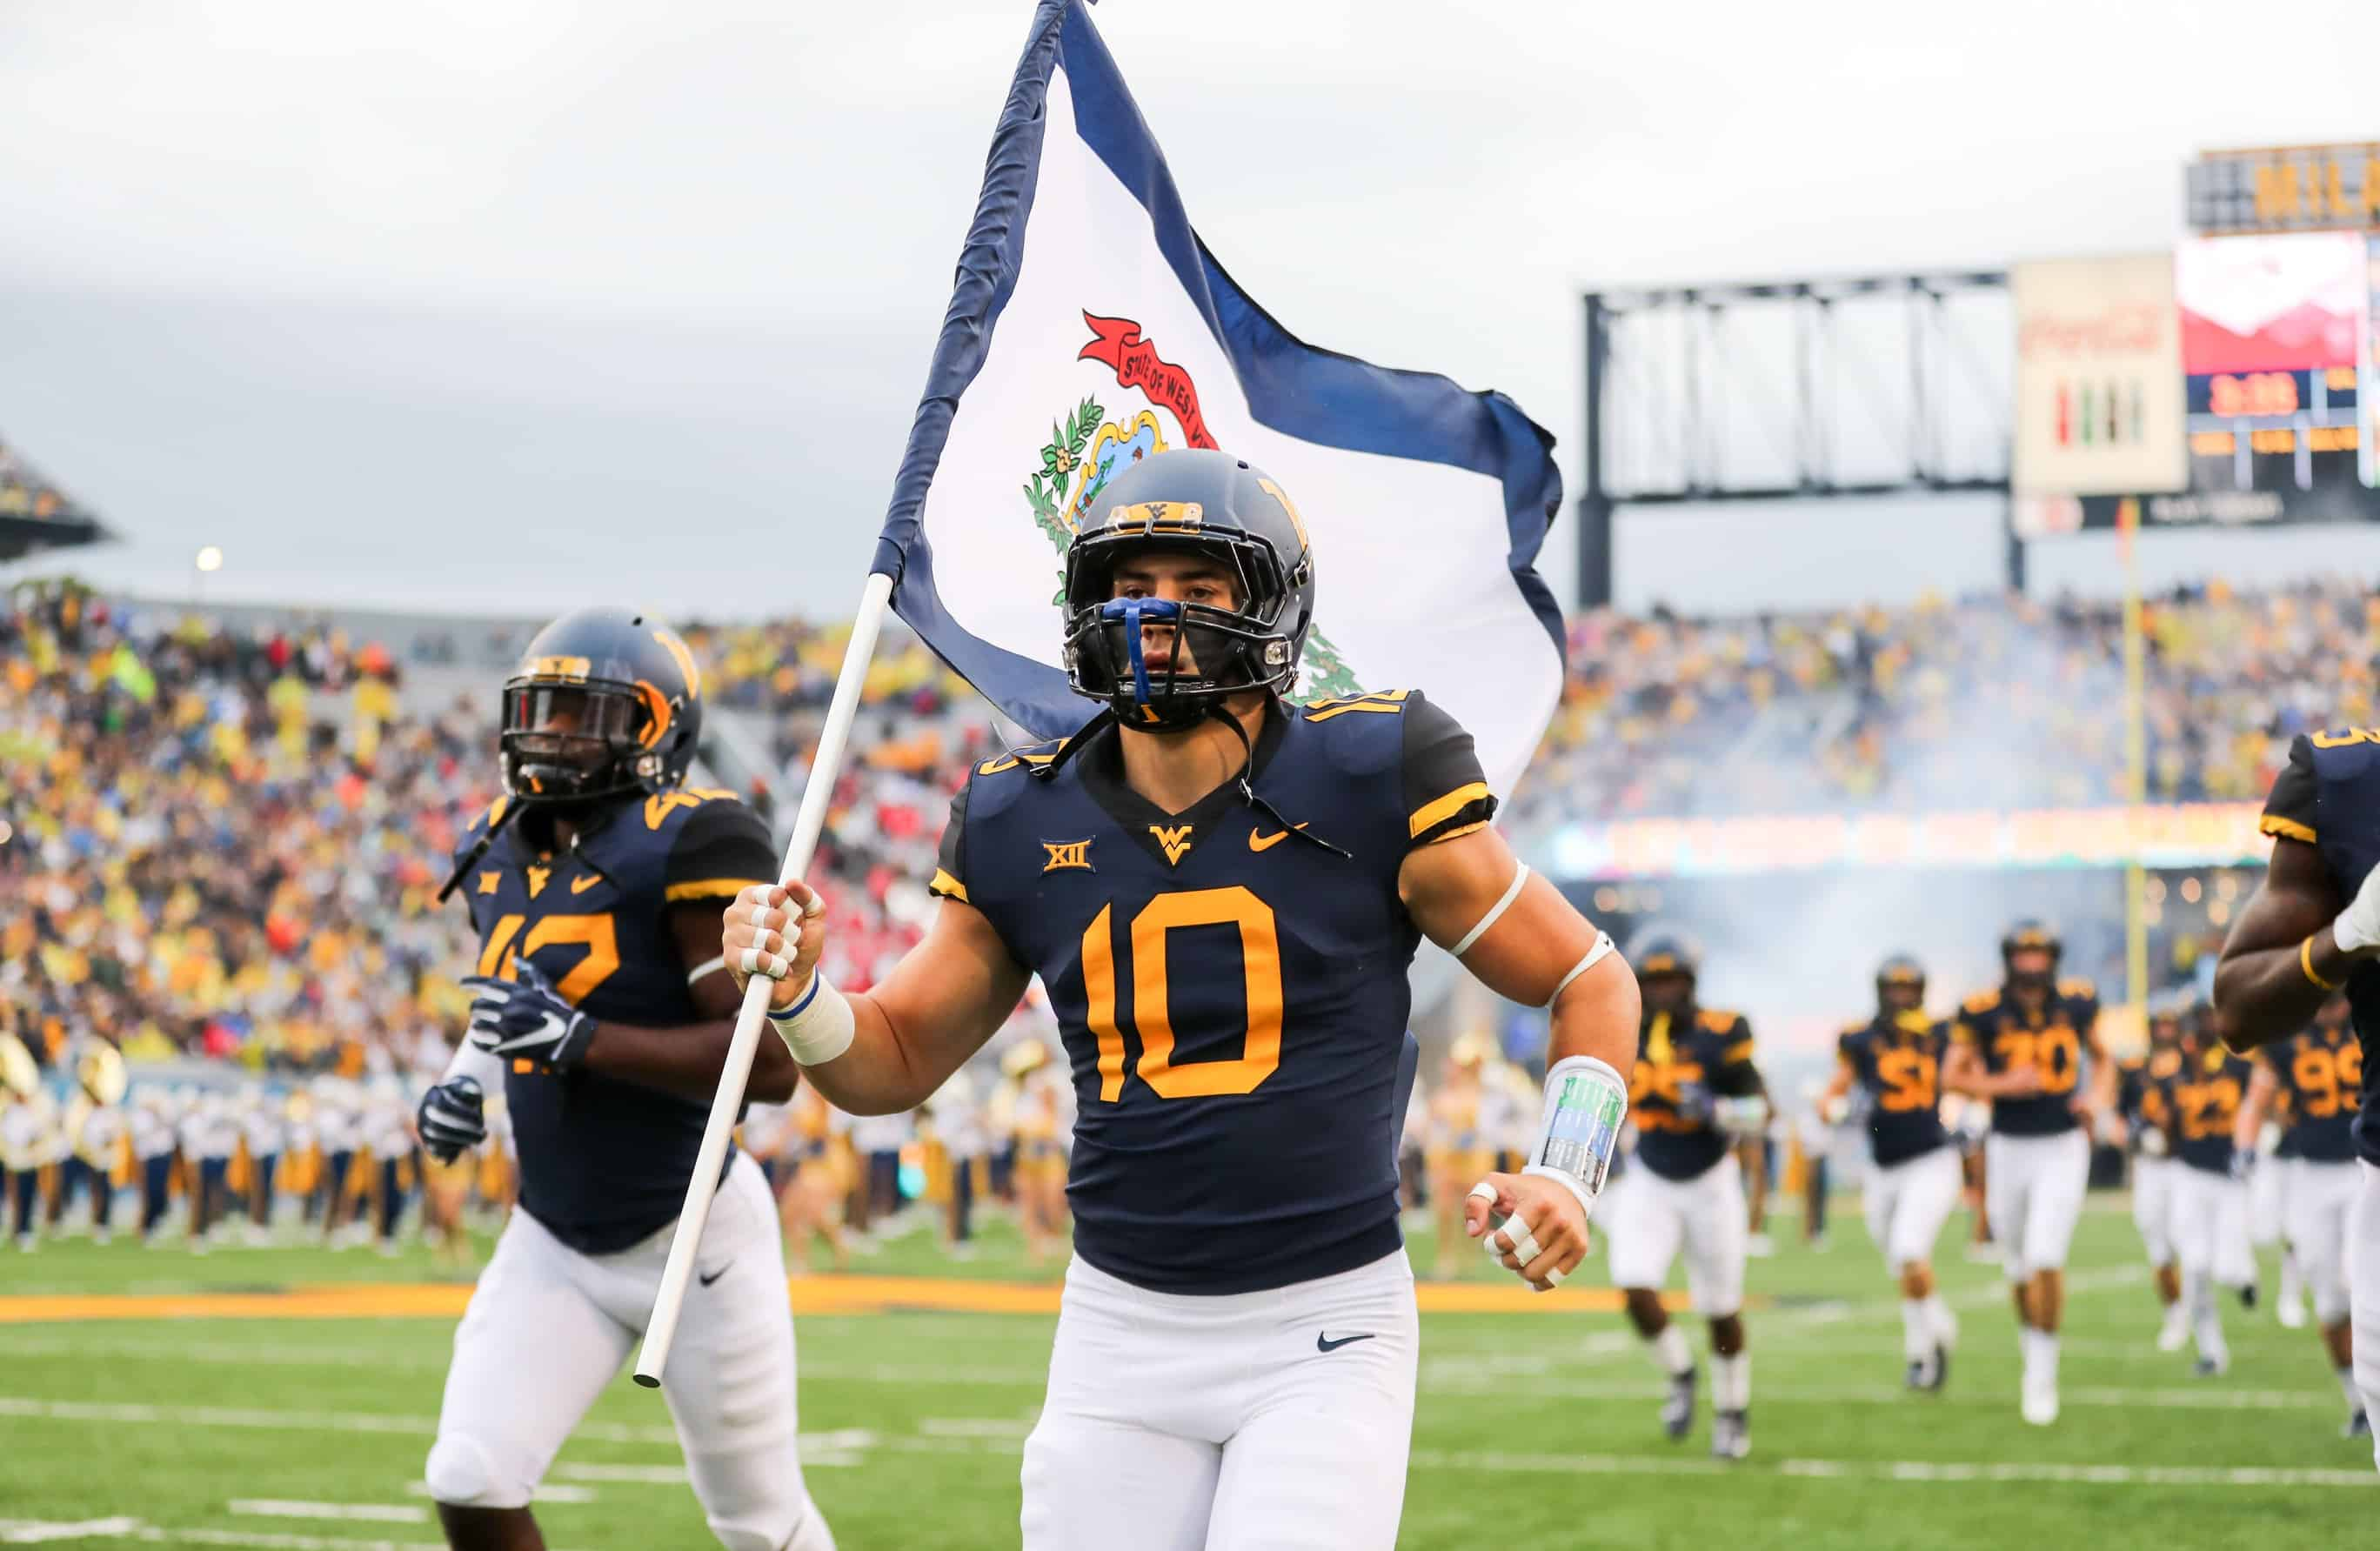 West Virginia Adds Towson To 2022 Football Schedule